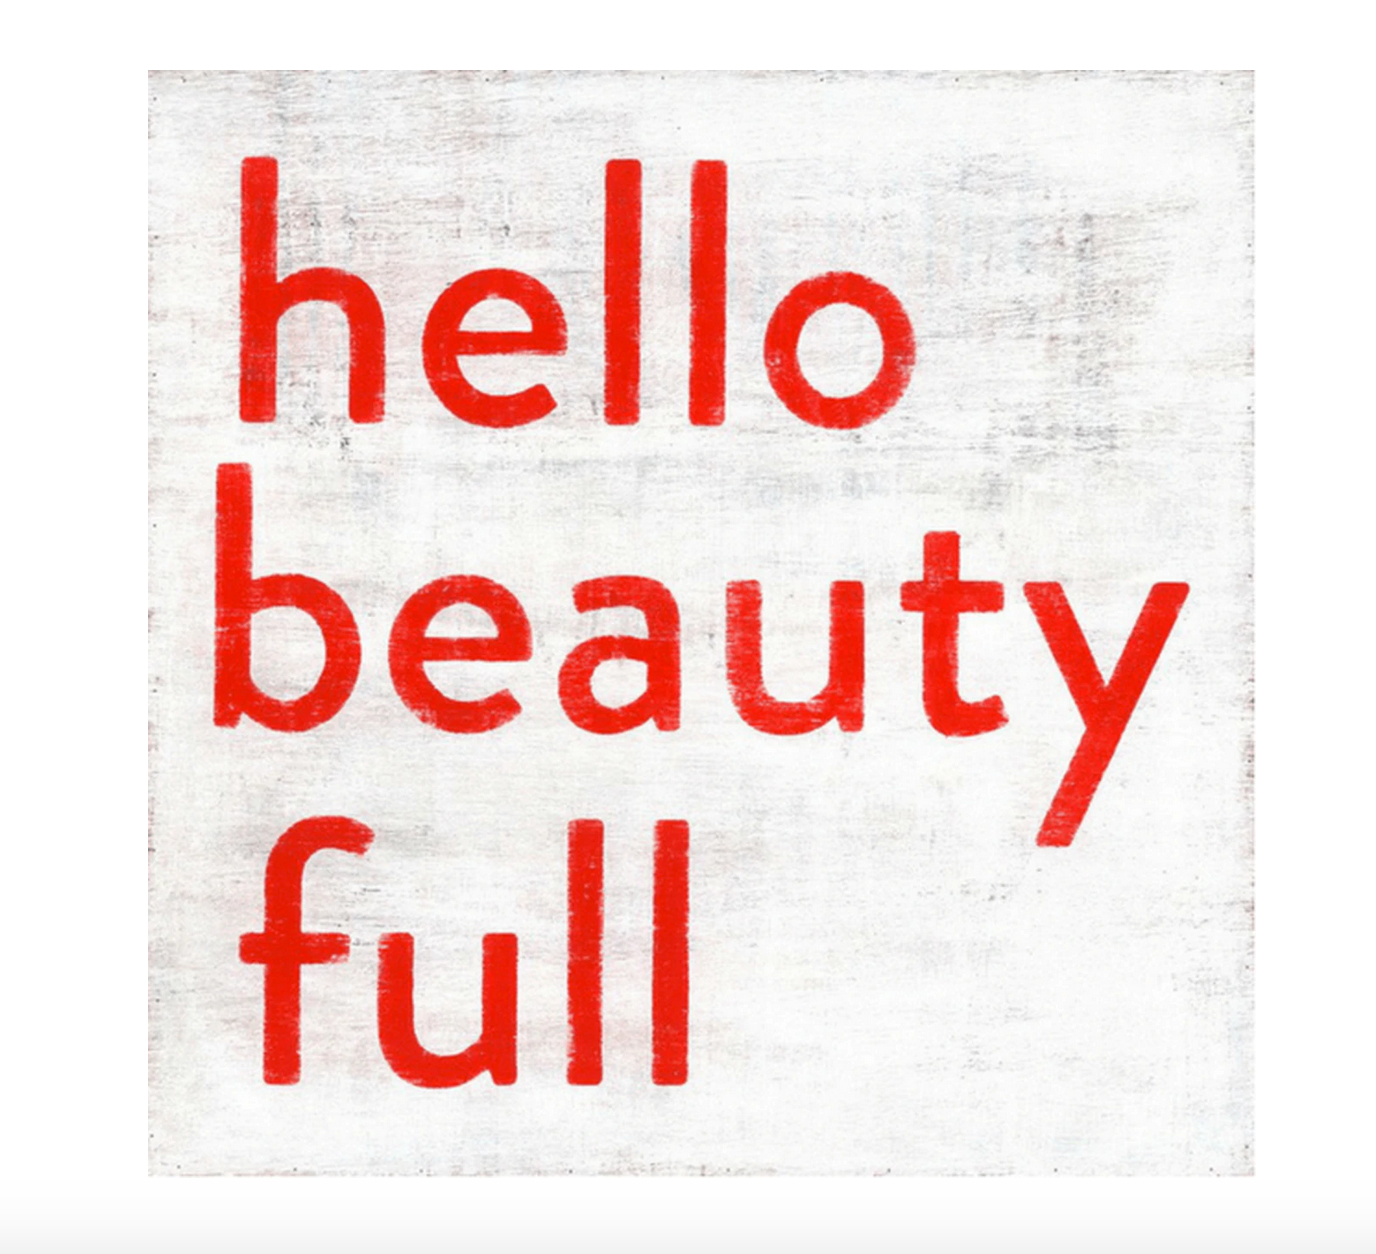 HELLO BEAUTY FULL ART PRINT